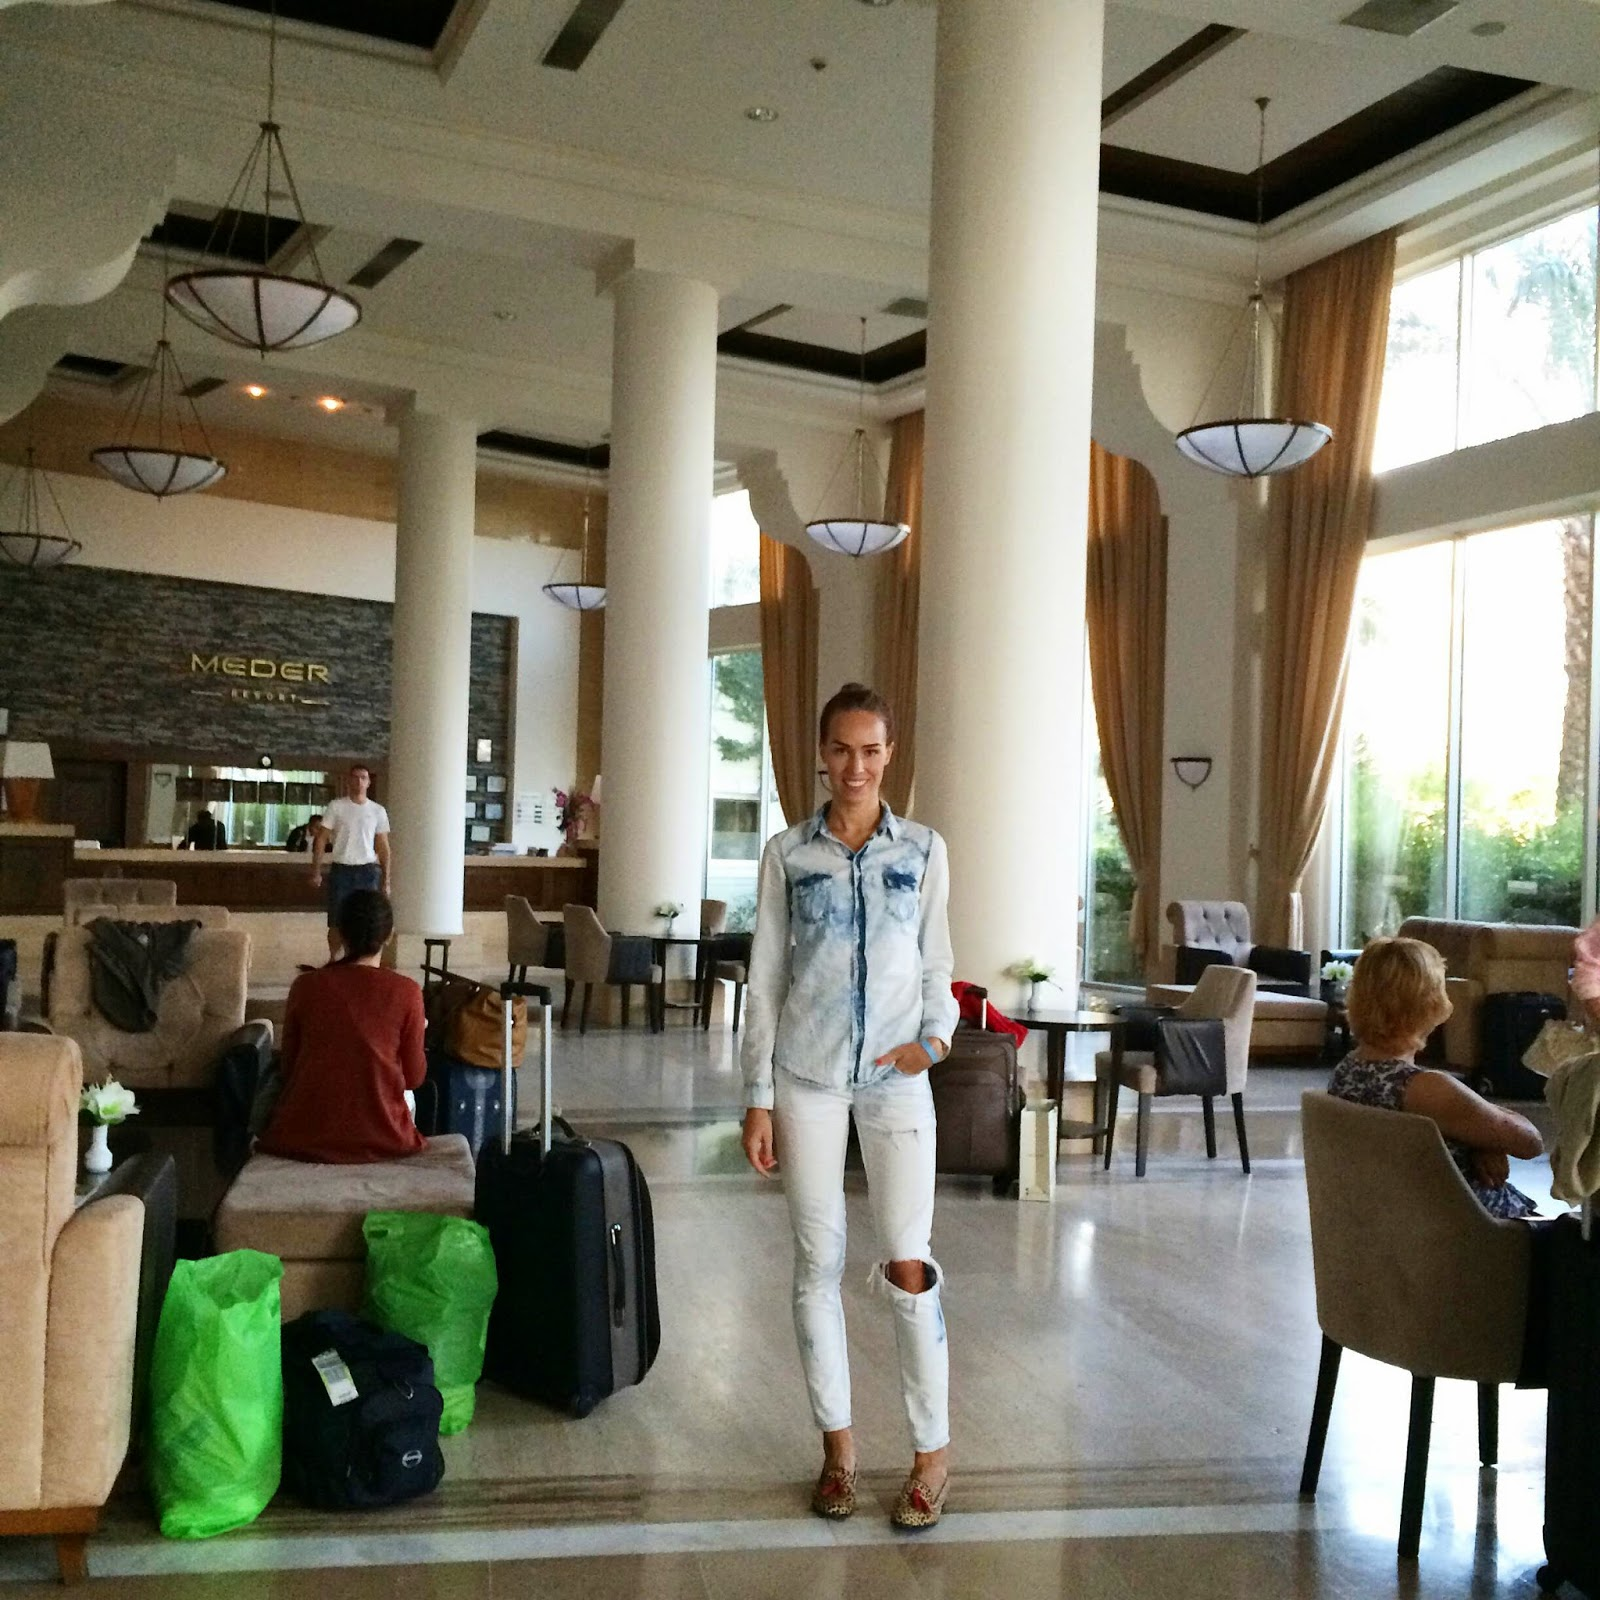 meder-resort-hotel-lobby-kemer-turkey-denim-on-denim